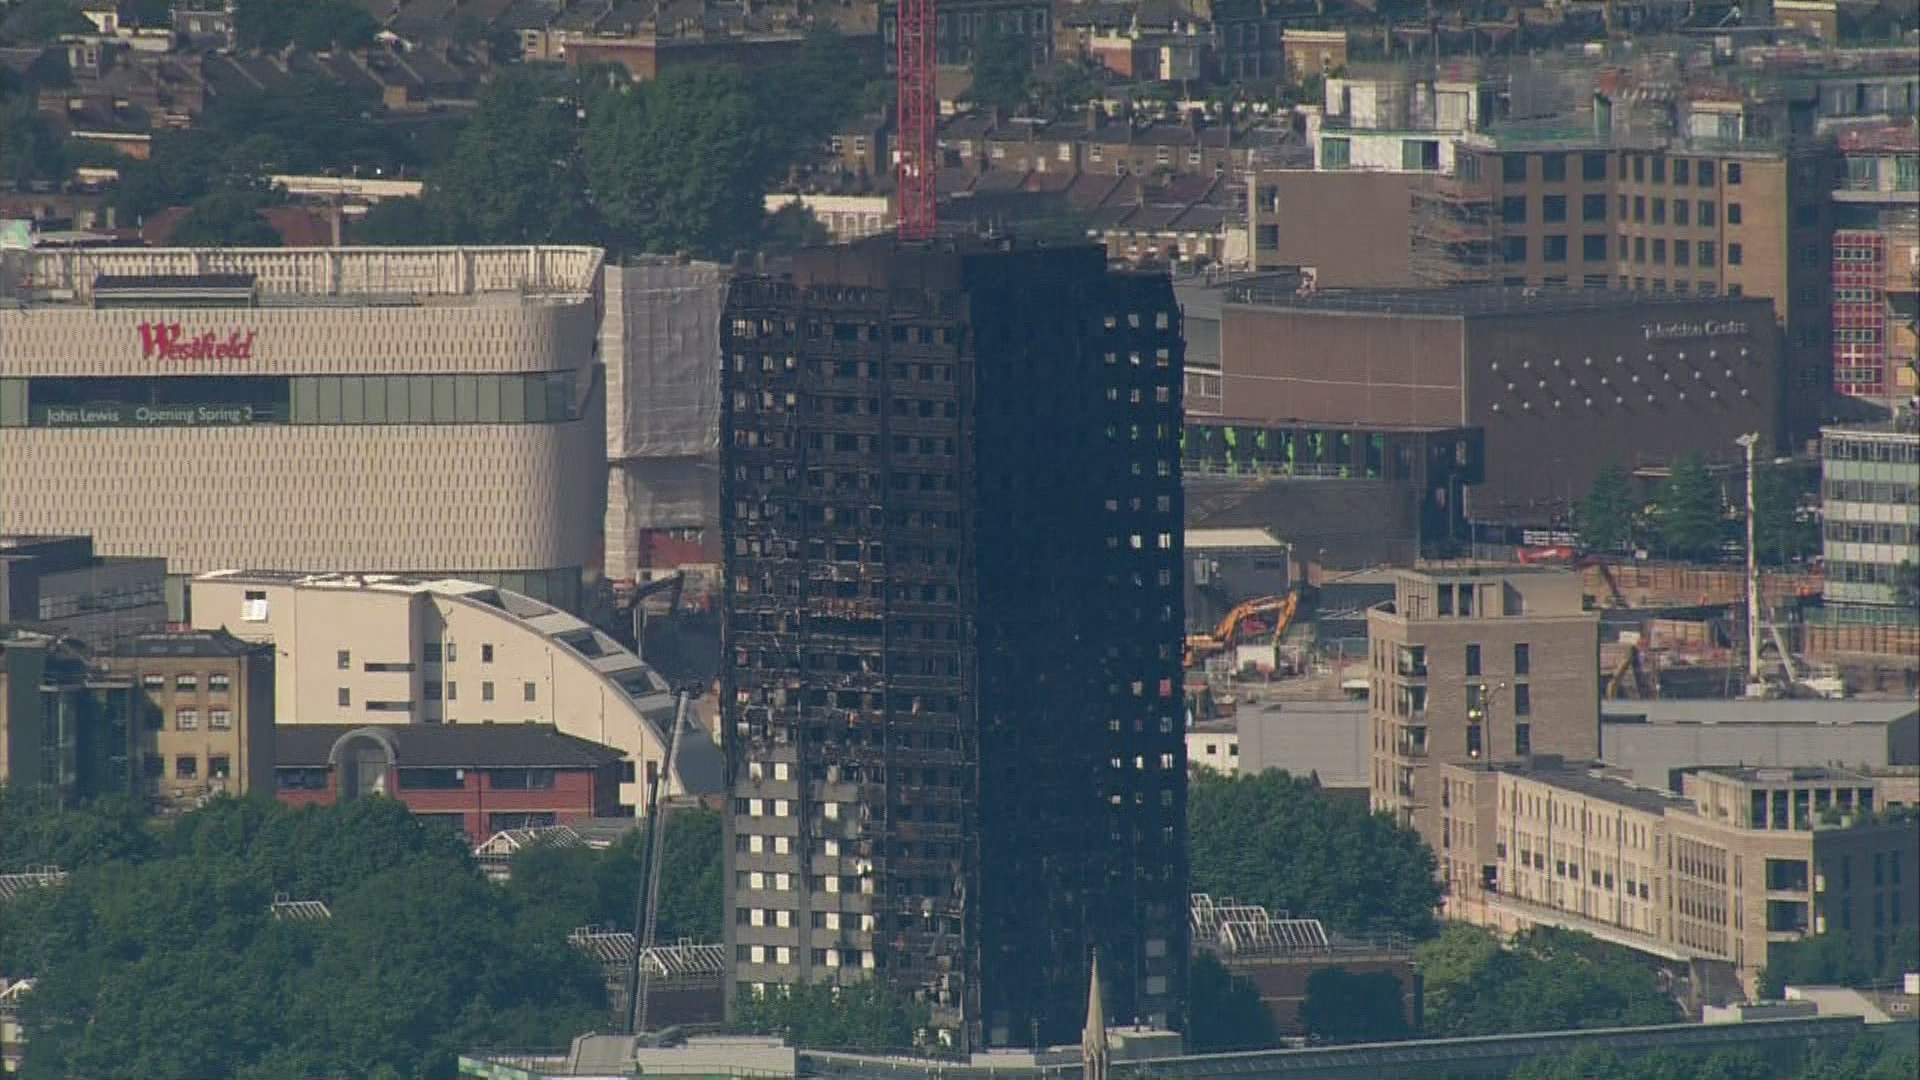 Full public inquiry ordered into Grenfell Tower disaster